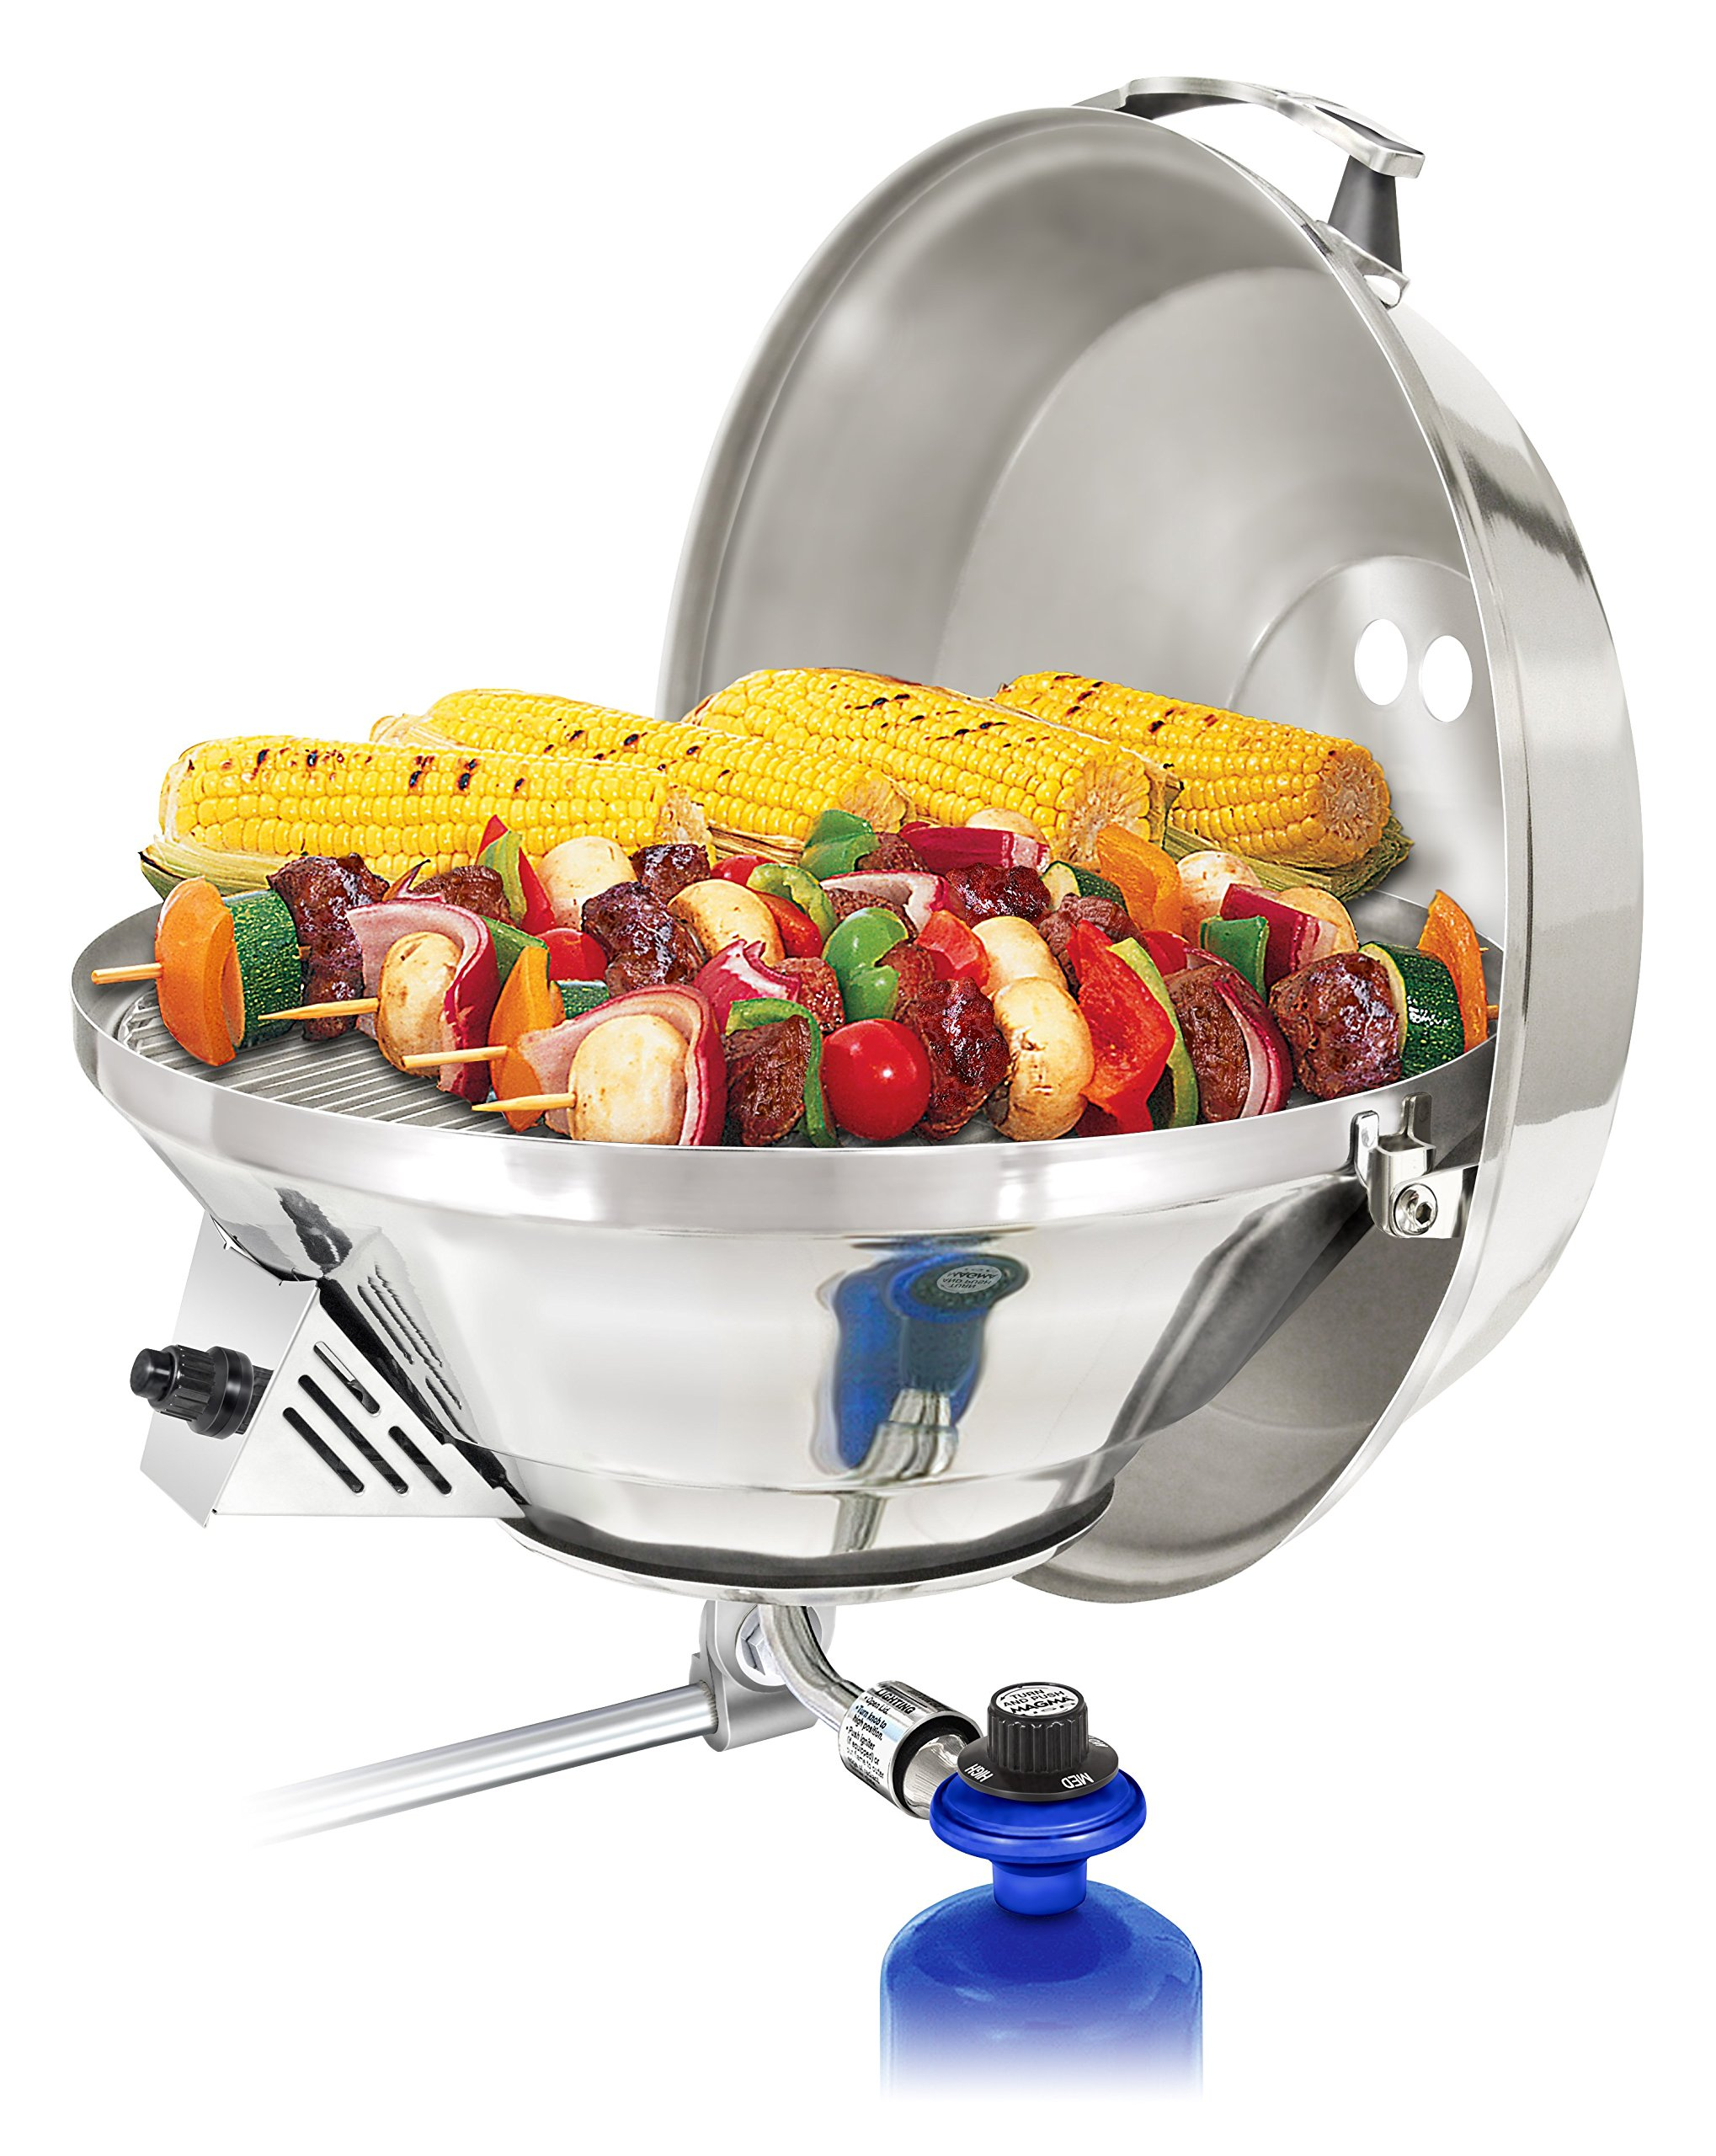 Magma Products, A10-217-3 Marine Kettle 3, A10-217-3, Combination Stove & Gas Grill, Propane Portable Oven, Party Size 17''